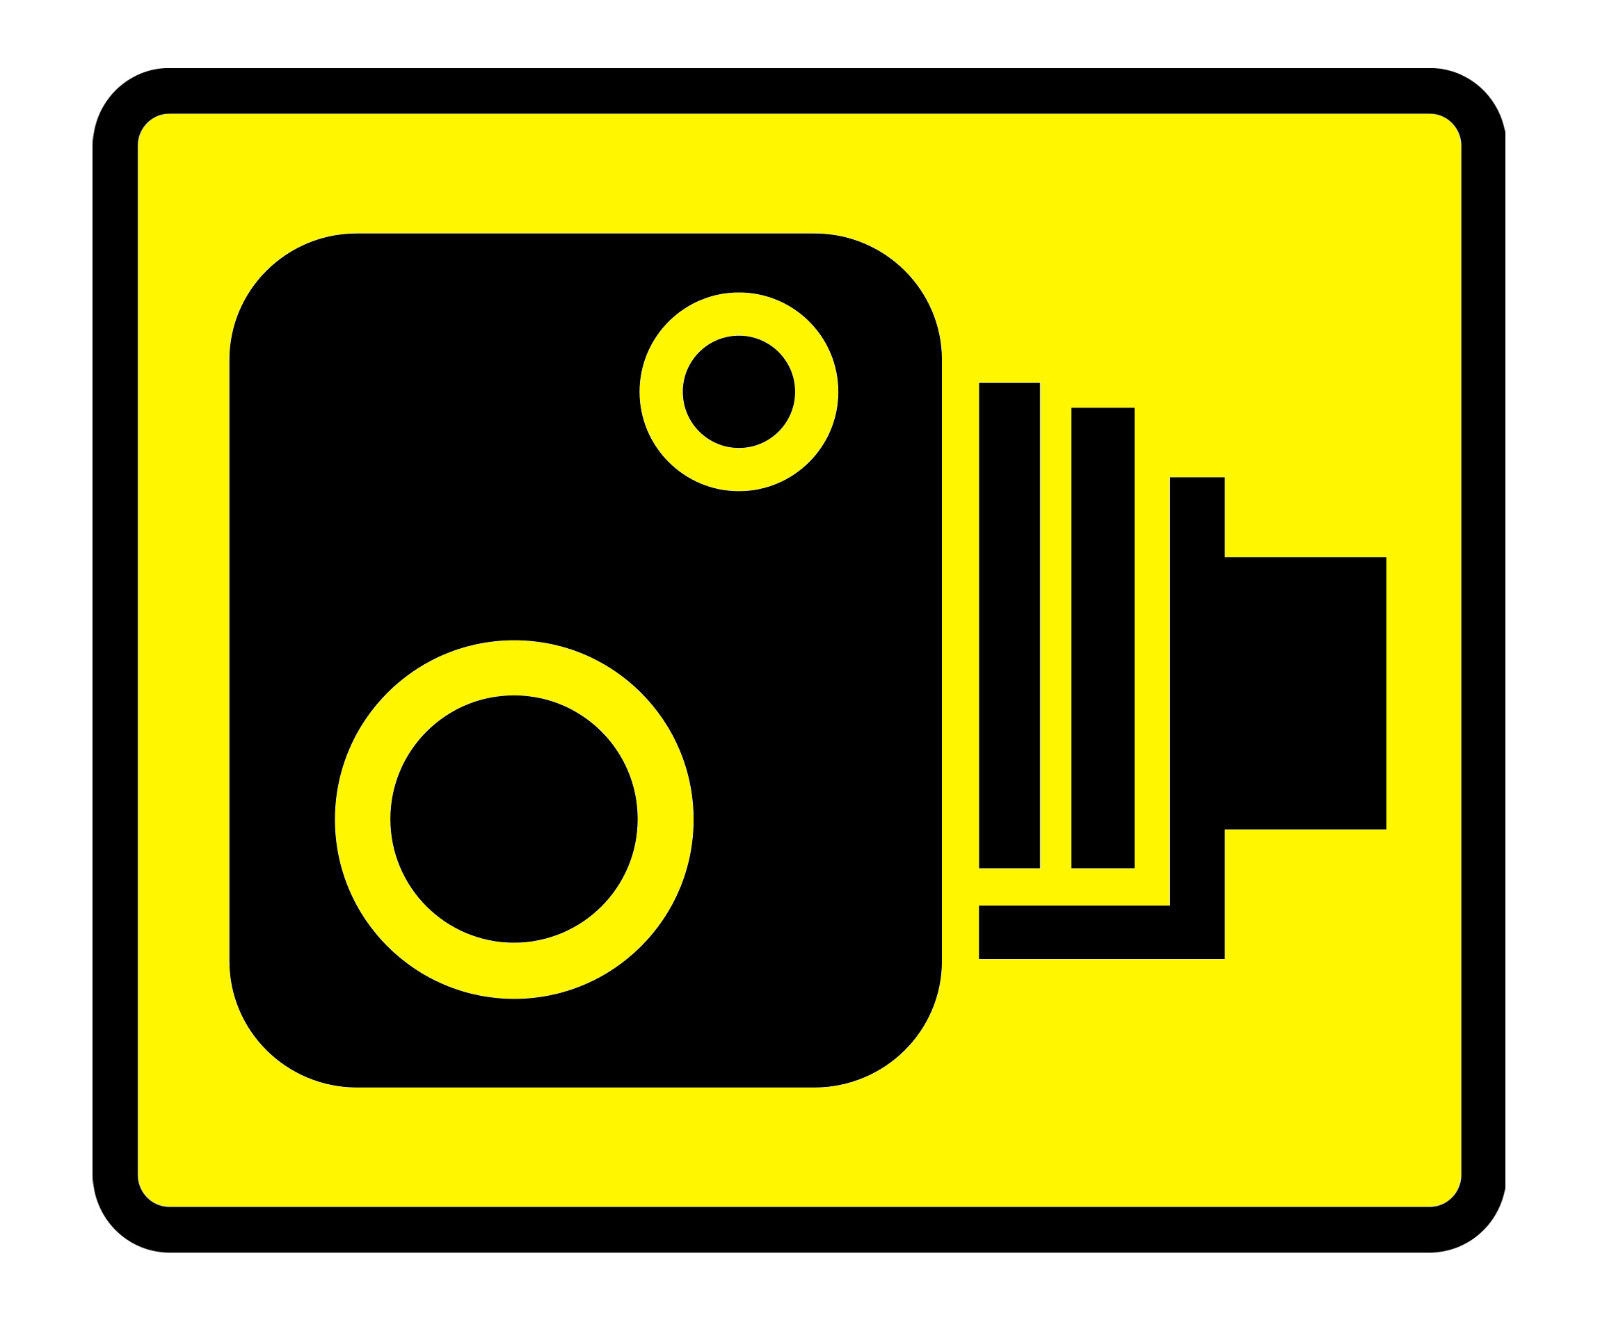 Small Wall Stickers Uk Speed Camera Yellow Road Traffic Warning Sign Self